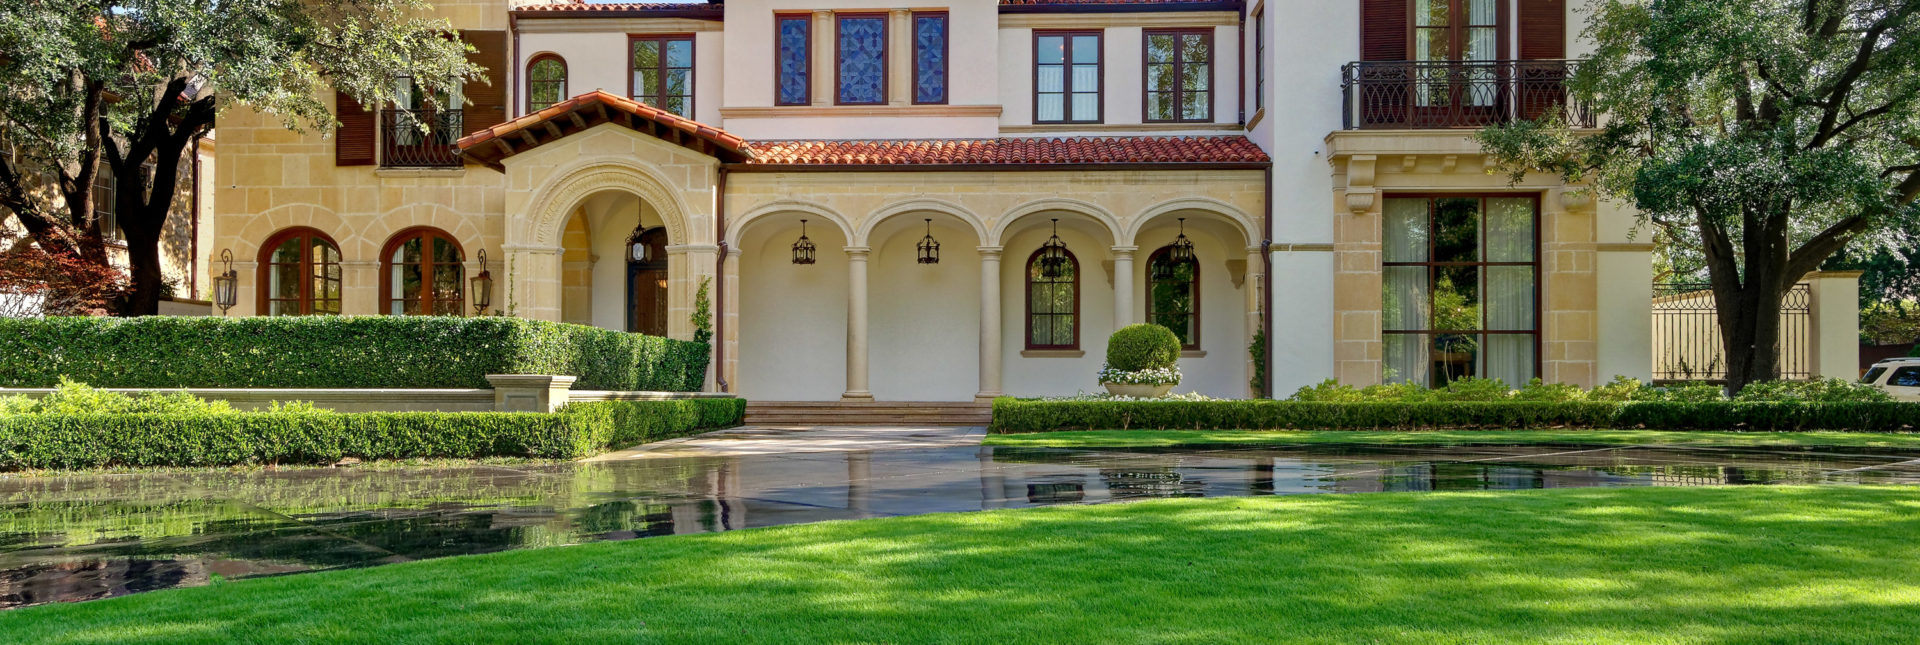 Southern Botanical's landscape experts share 5 must-know summer water conservation tips for lawns and landscapes in North Texas